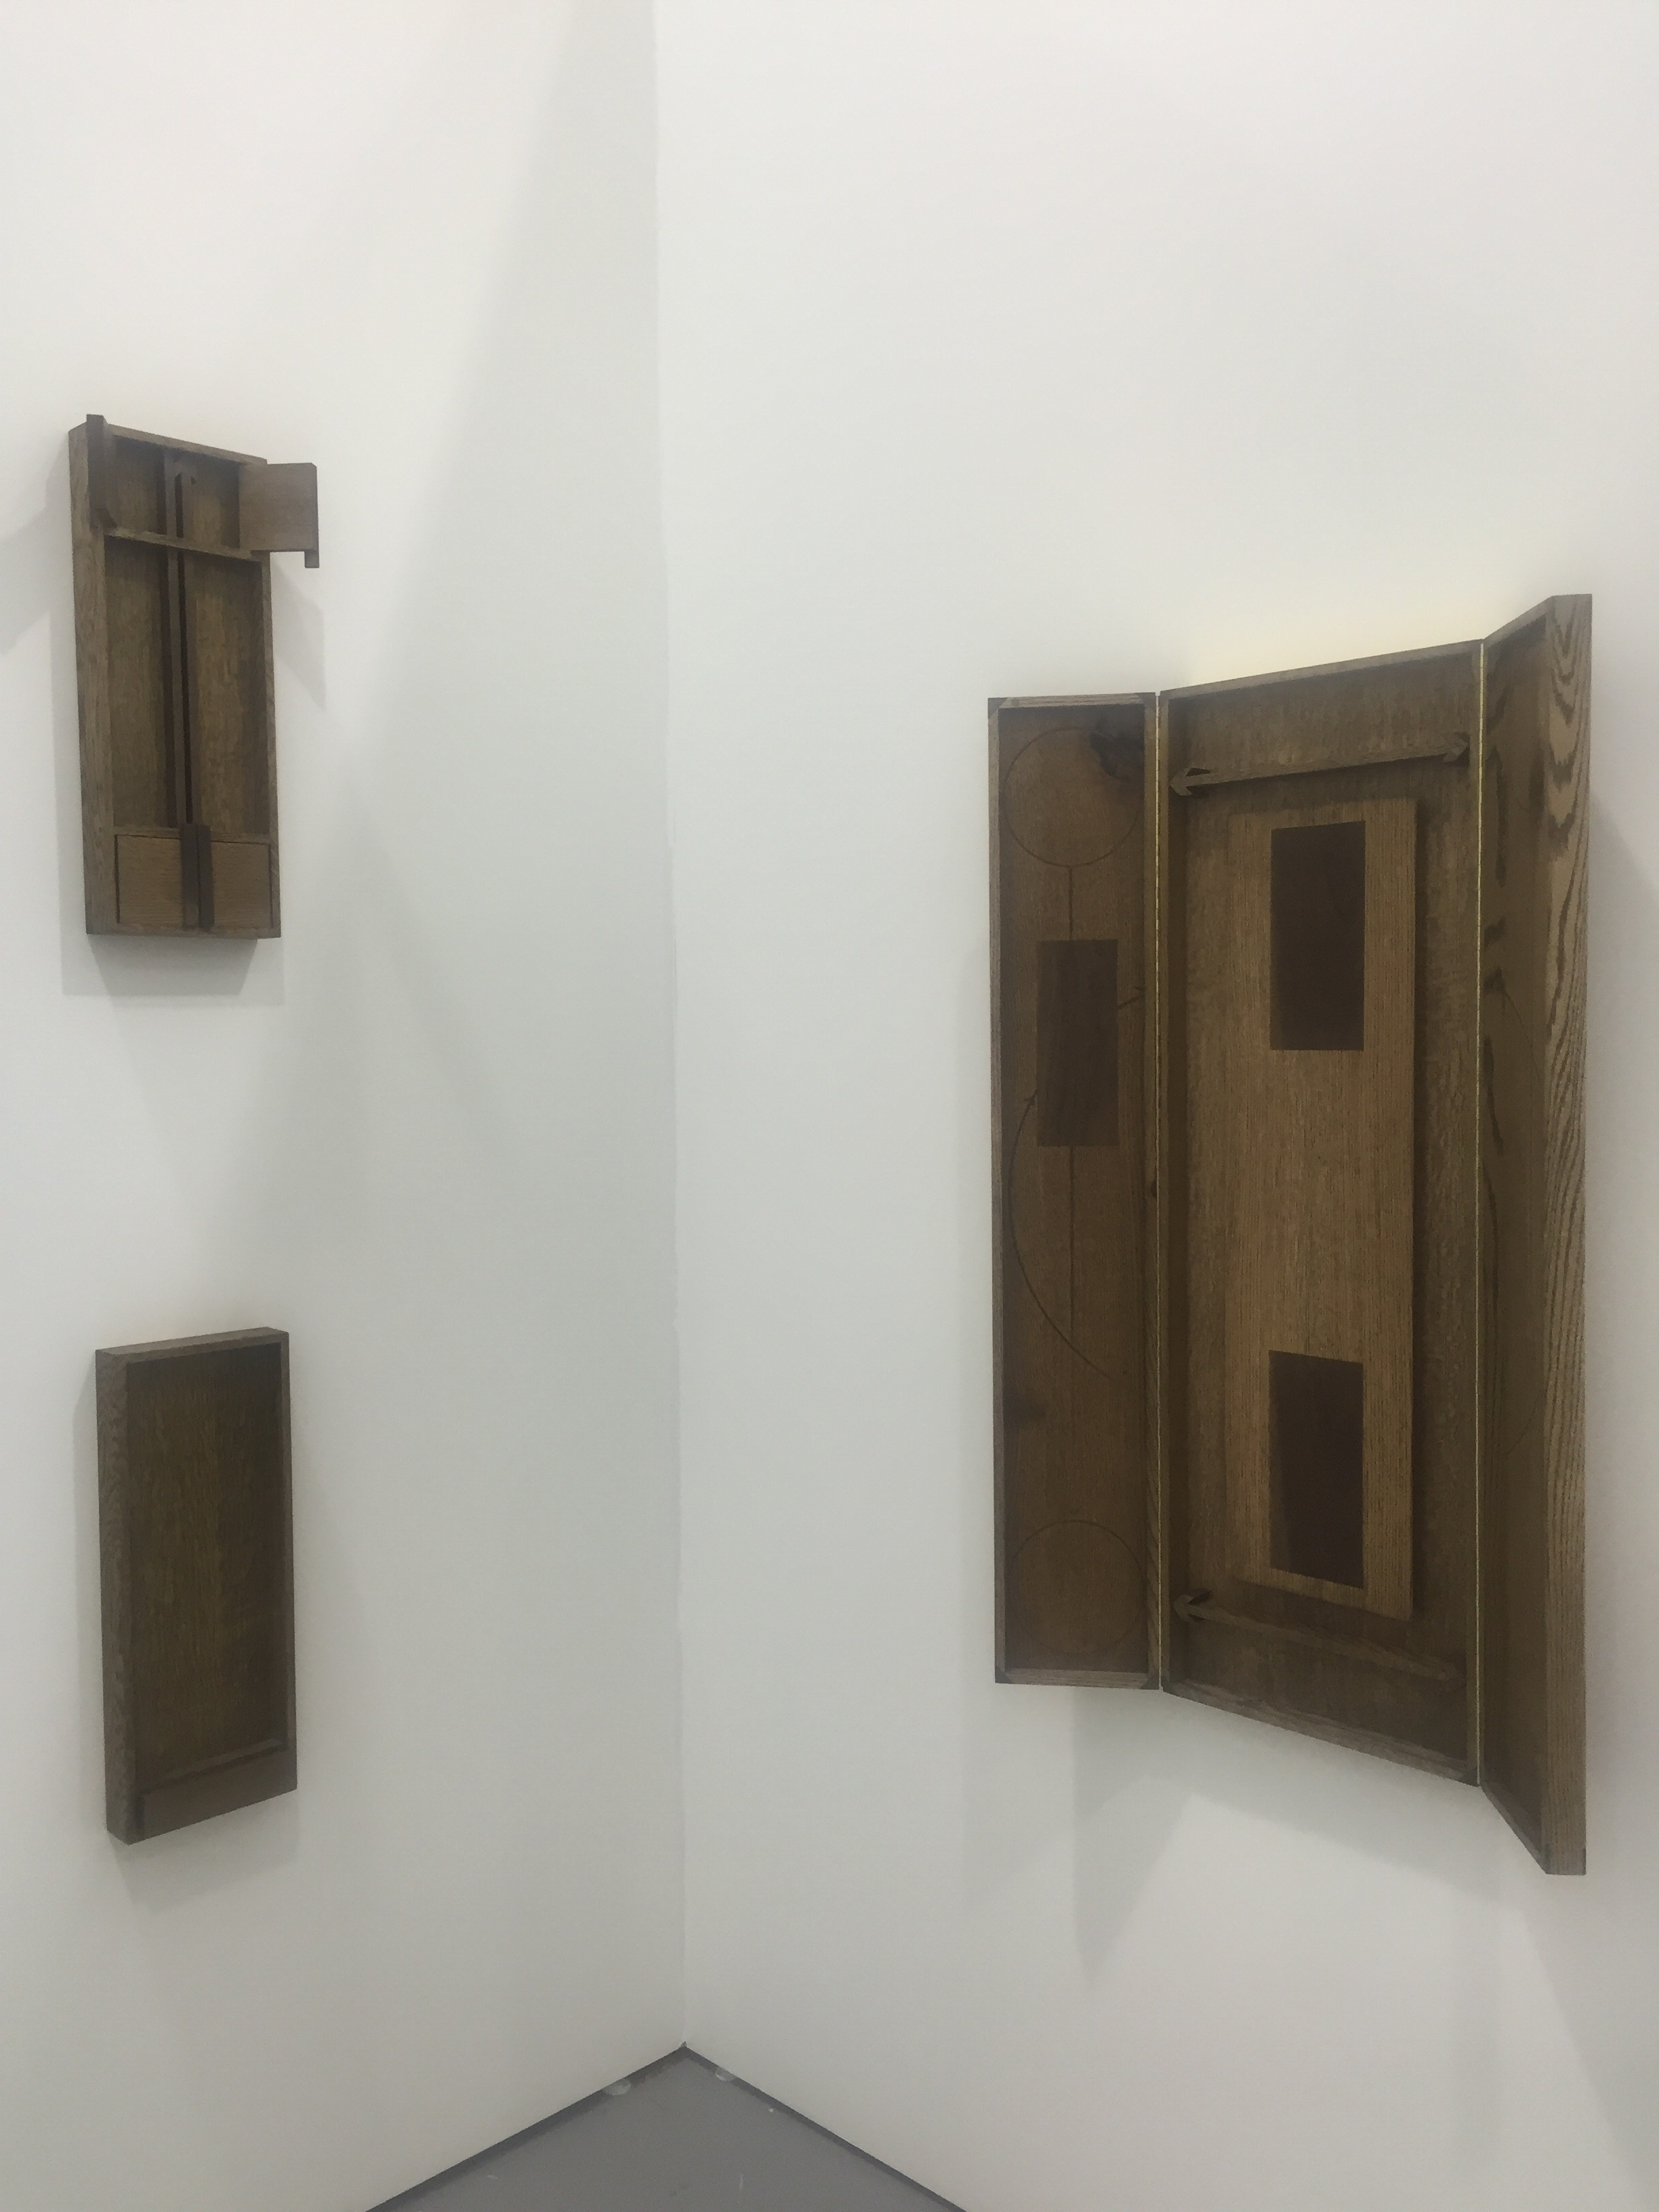 Nate Young, Monique Meloche Gallery, Chicago